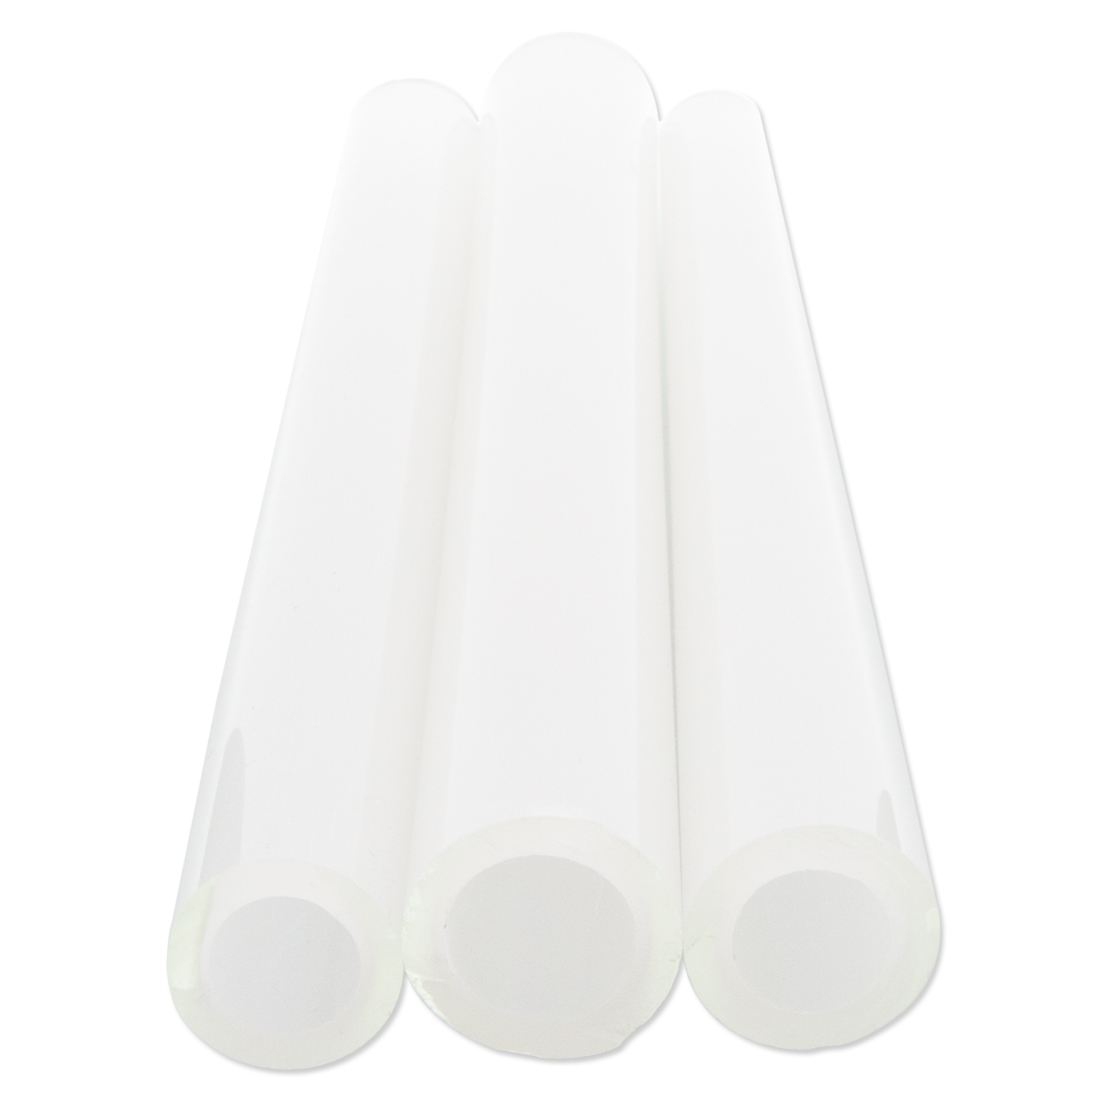 GG Silky White Satin in Clear Tube